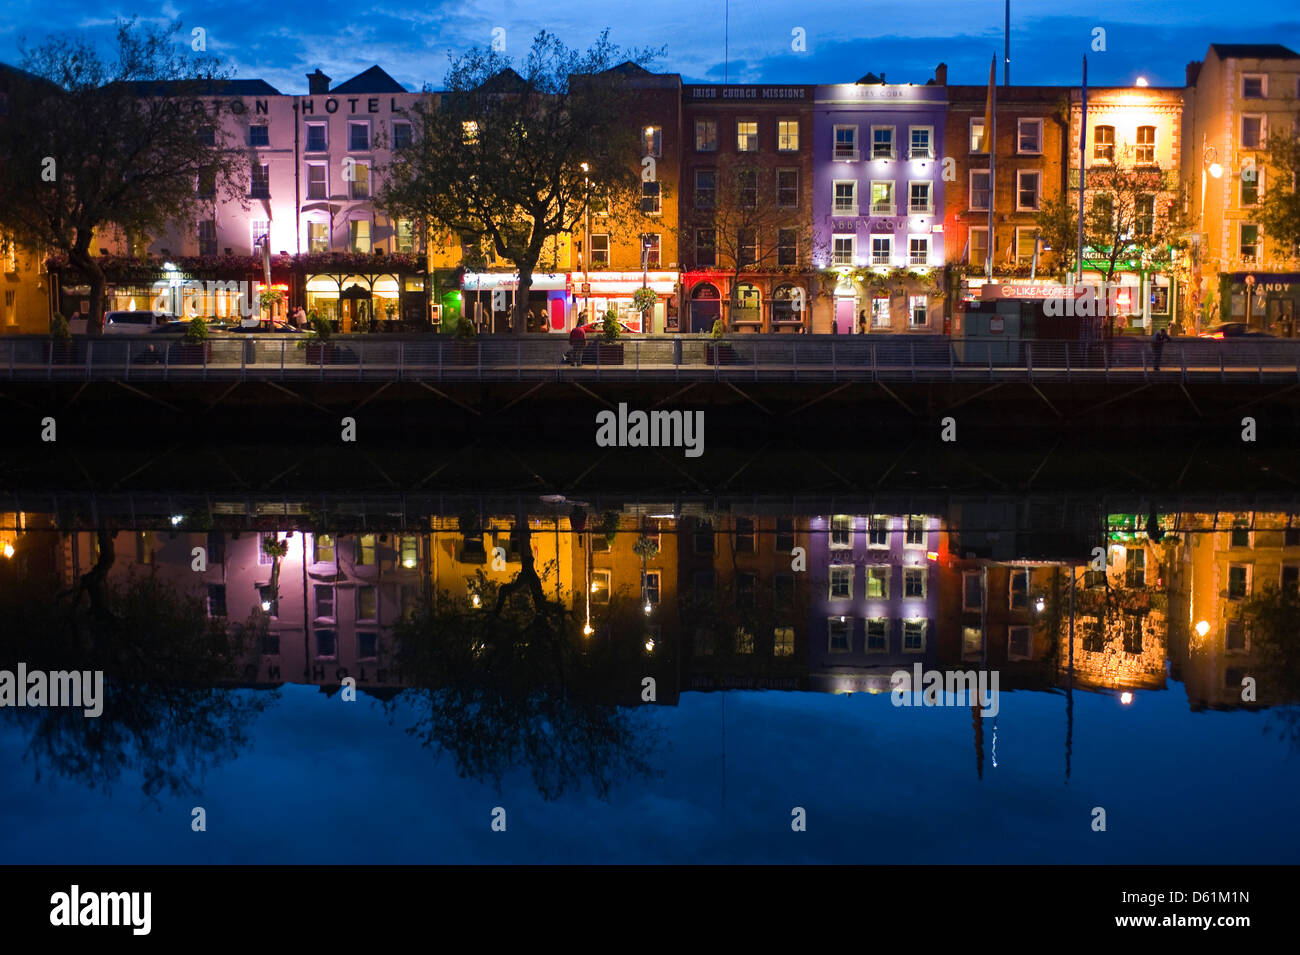 Horizontal view of the colourful buildings along Batchelor's Walk reflected in the River Liffey in Dublin at night. Stock Photo